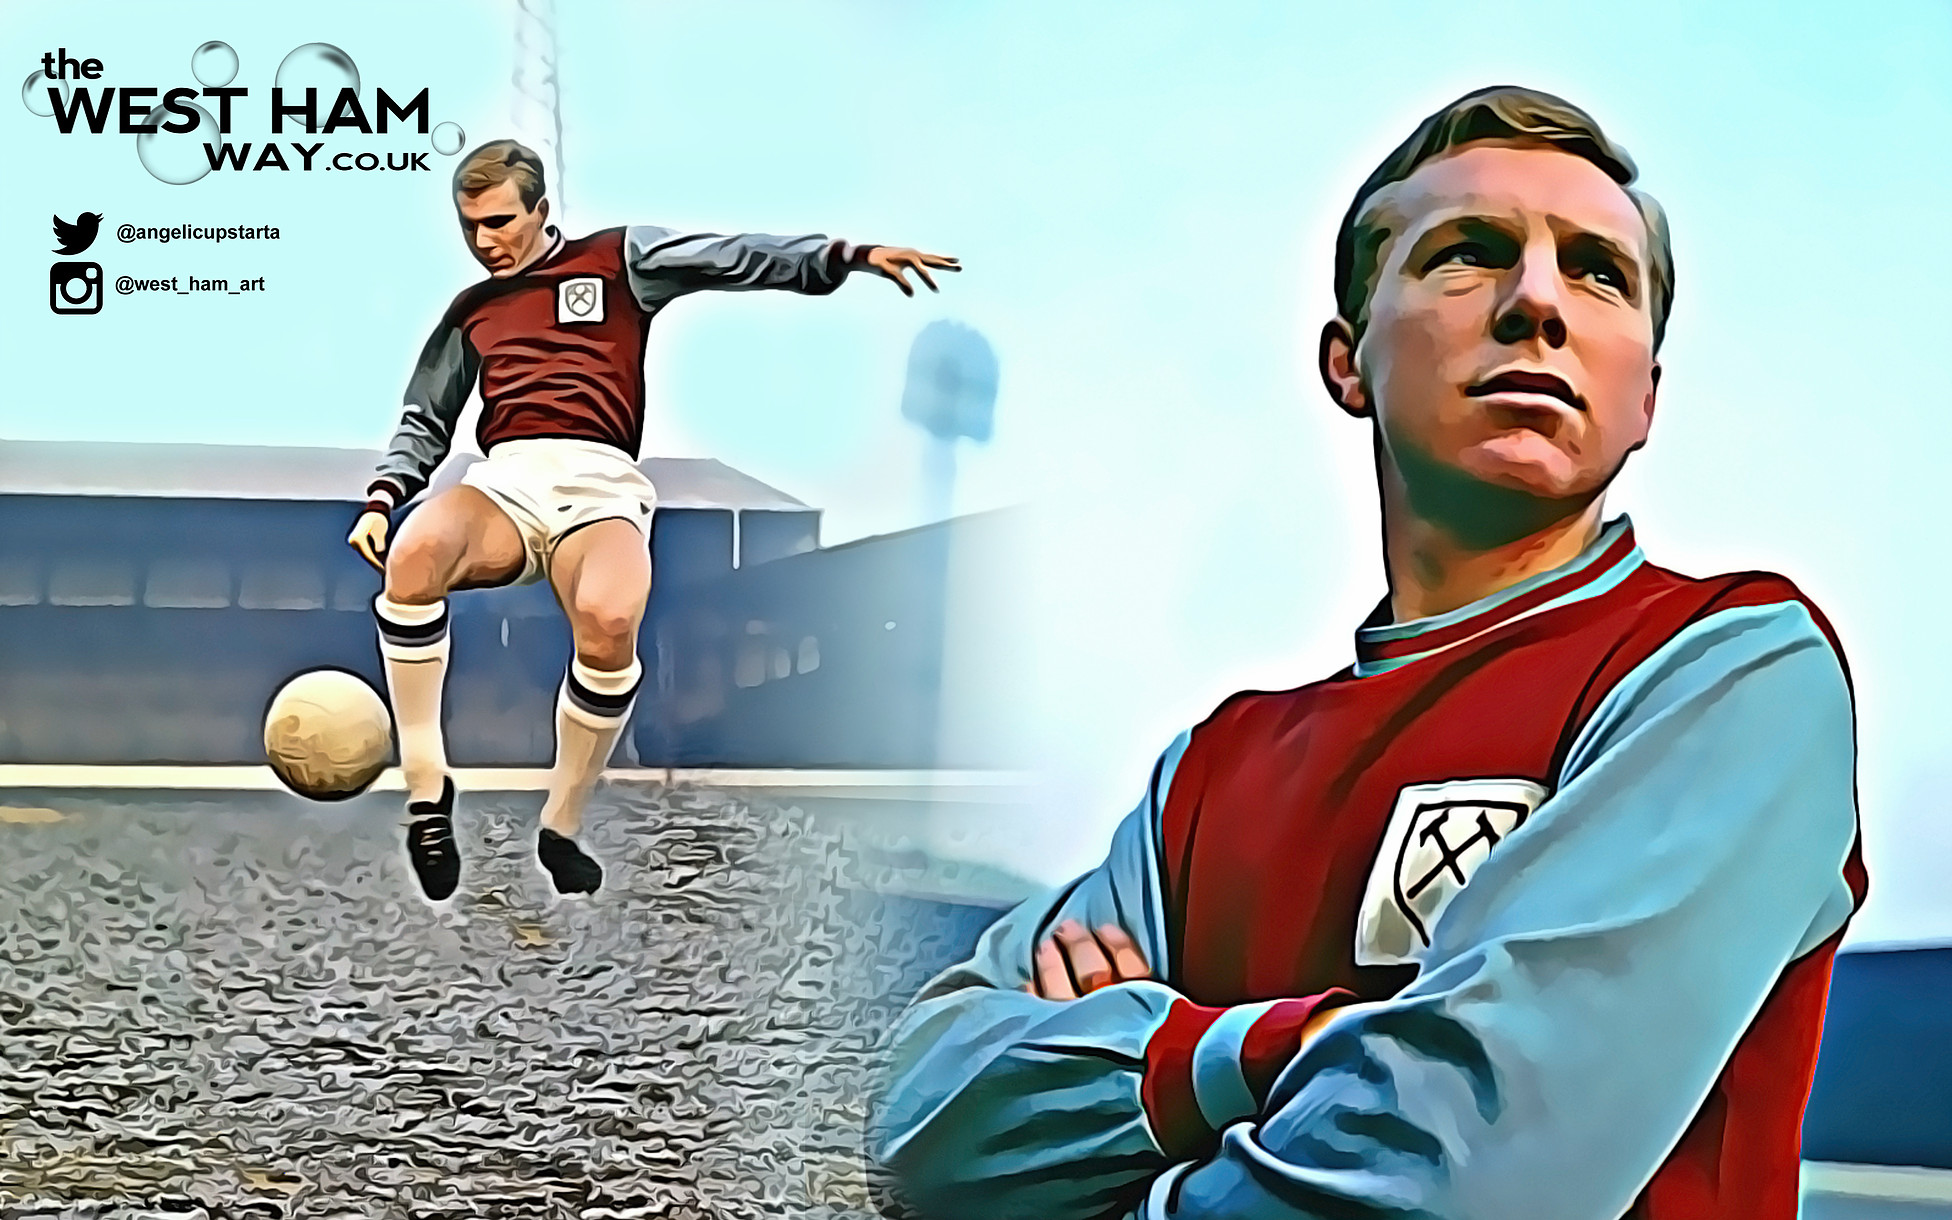 Bobby Moore Wallpaper The West Ham Way